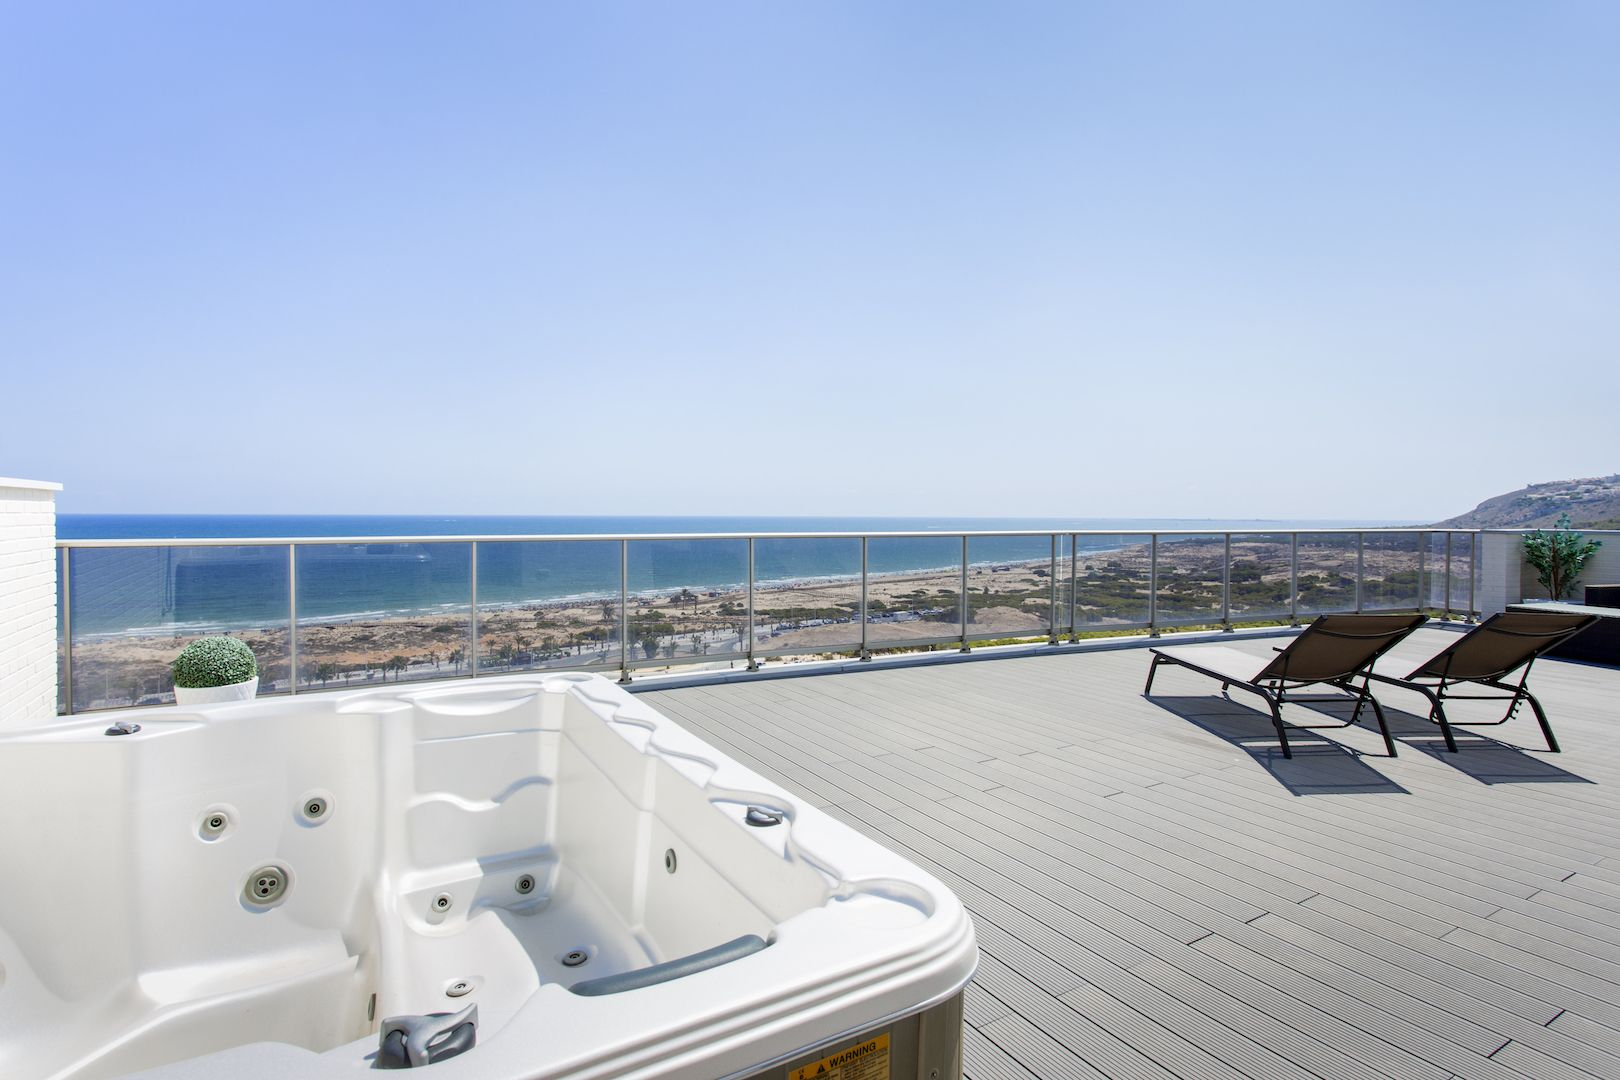 Flats and penthouses of 2, 3 and 4 bedrooms a few meters from the sea in Arenales del Sol. 5